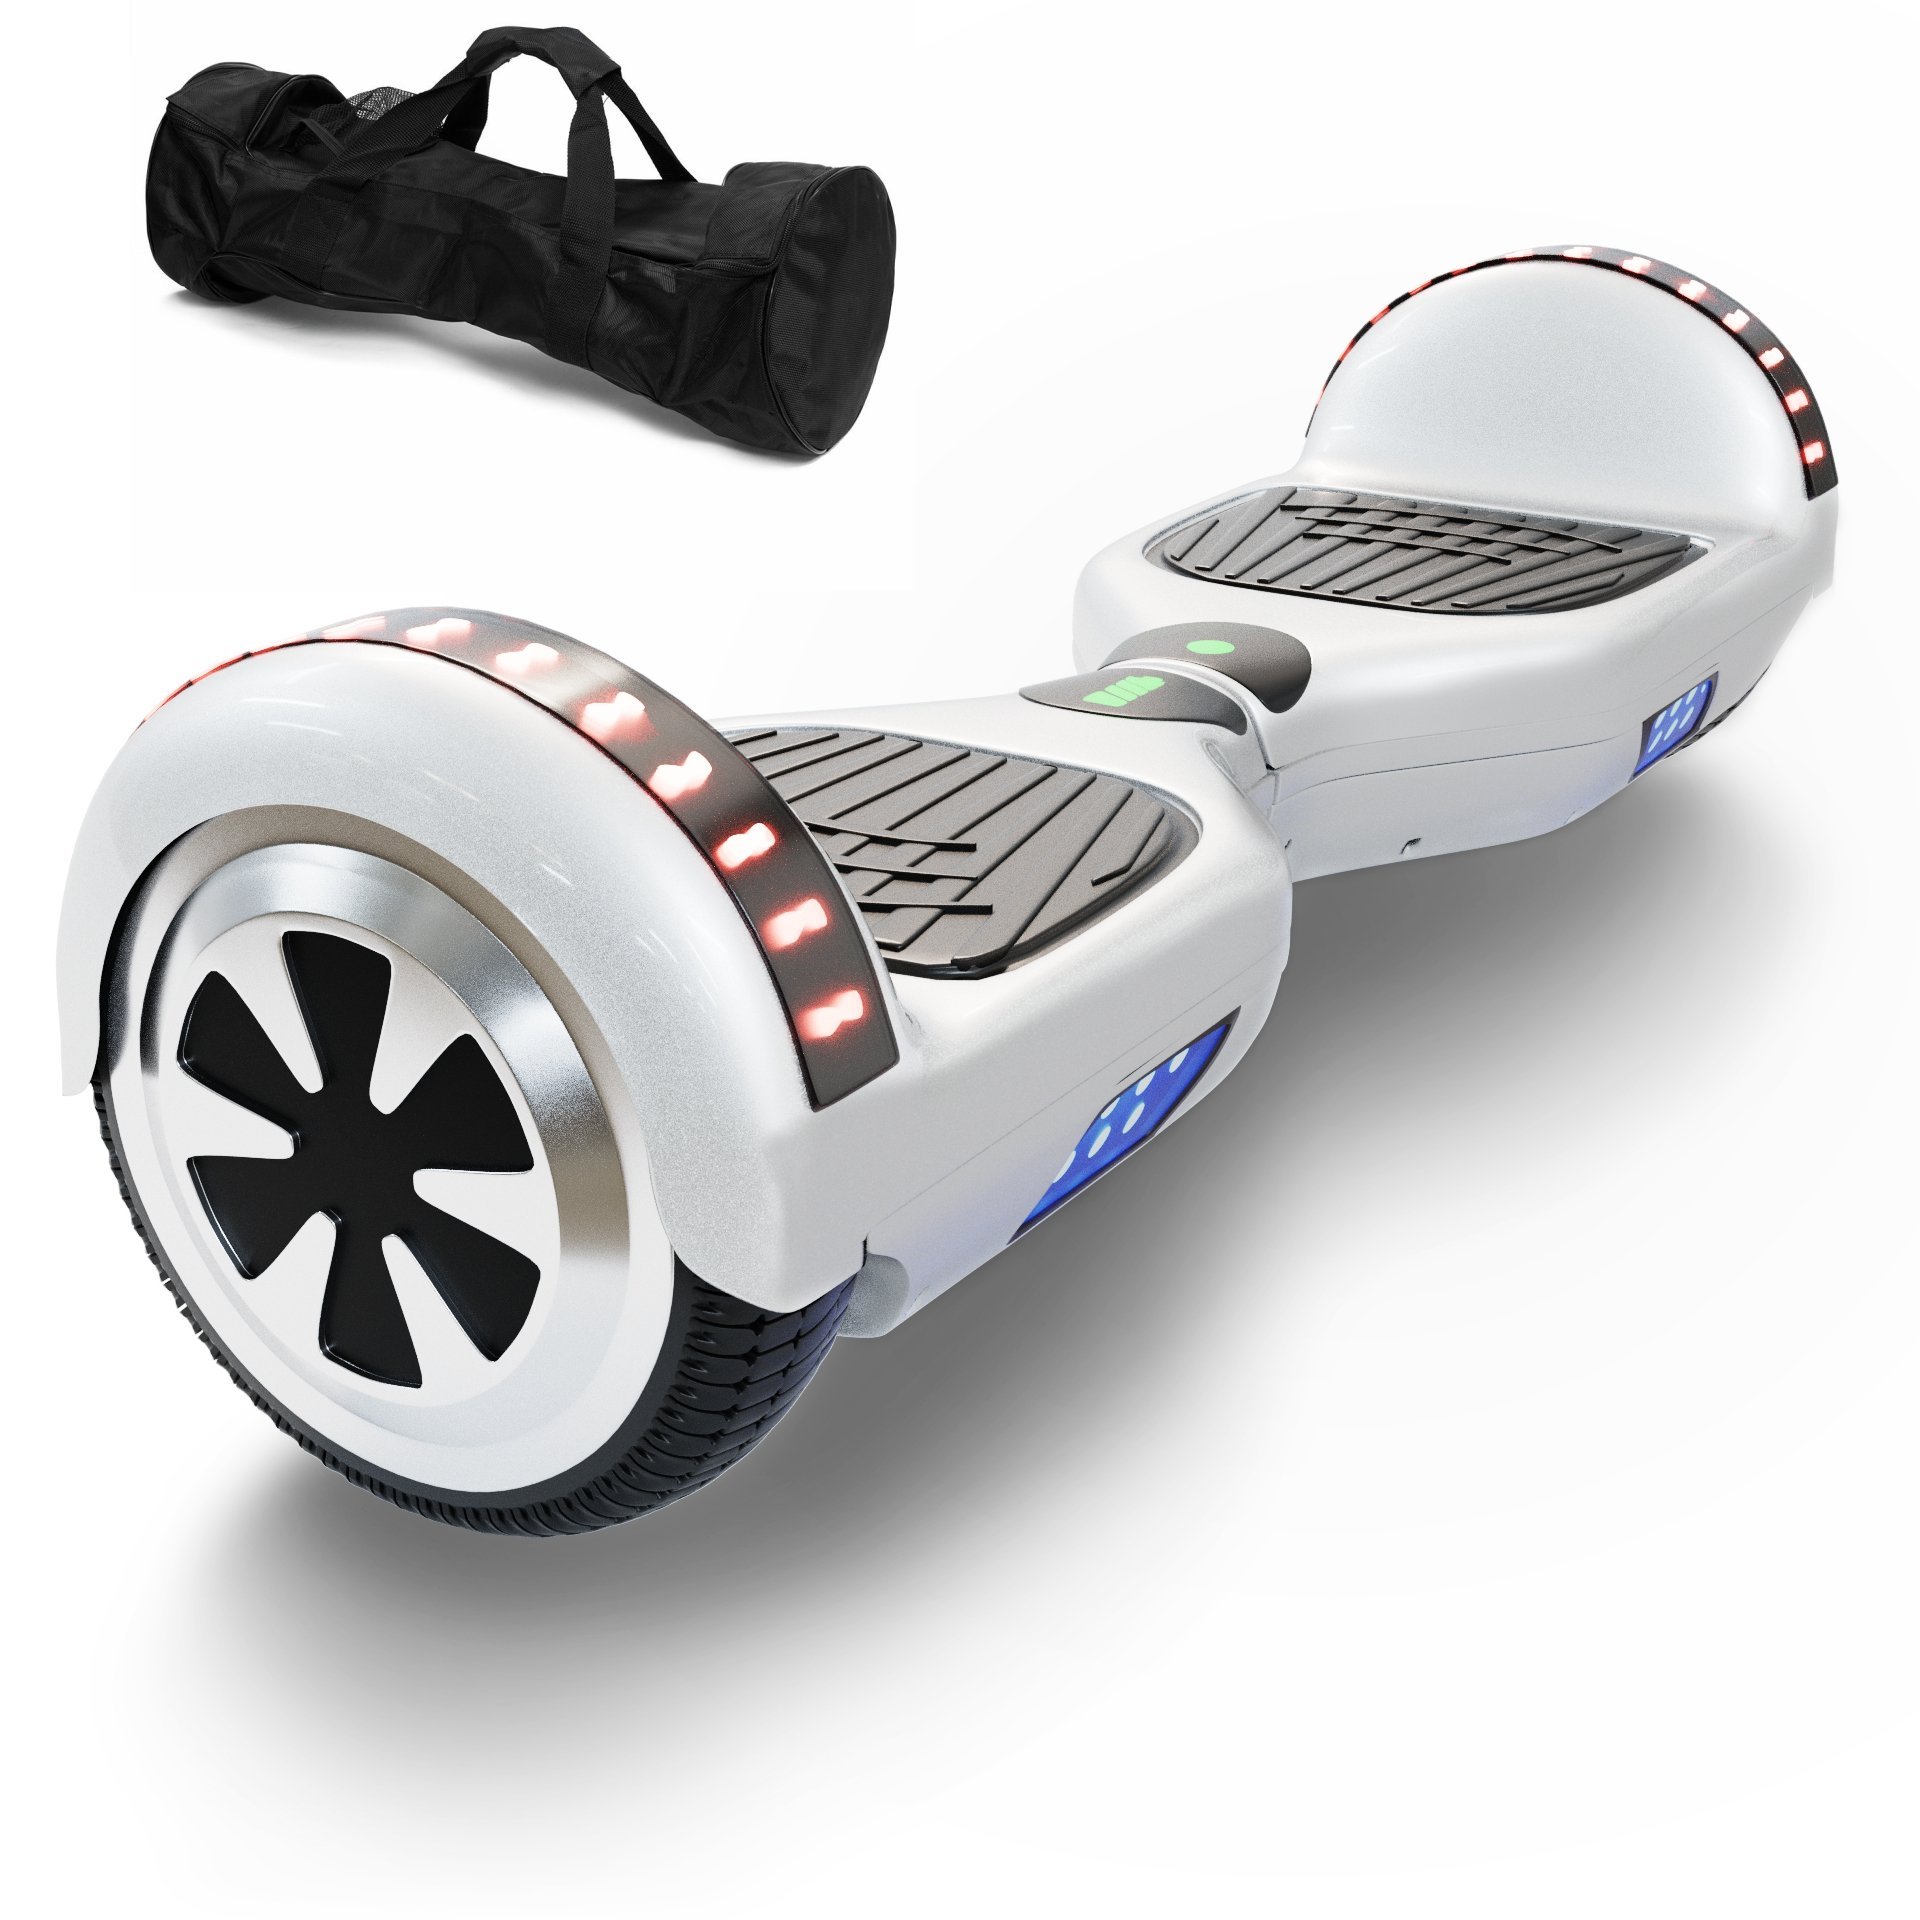 CXInWalk Hoverboard Self Balancing Scooter UL 2272 Certified with Powerful Bluetooth Speaker, Cool LED lights and FREE Portable Carrying Bag (Ivory White)